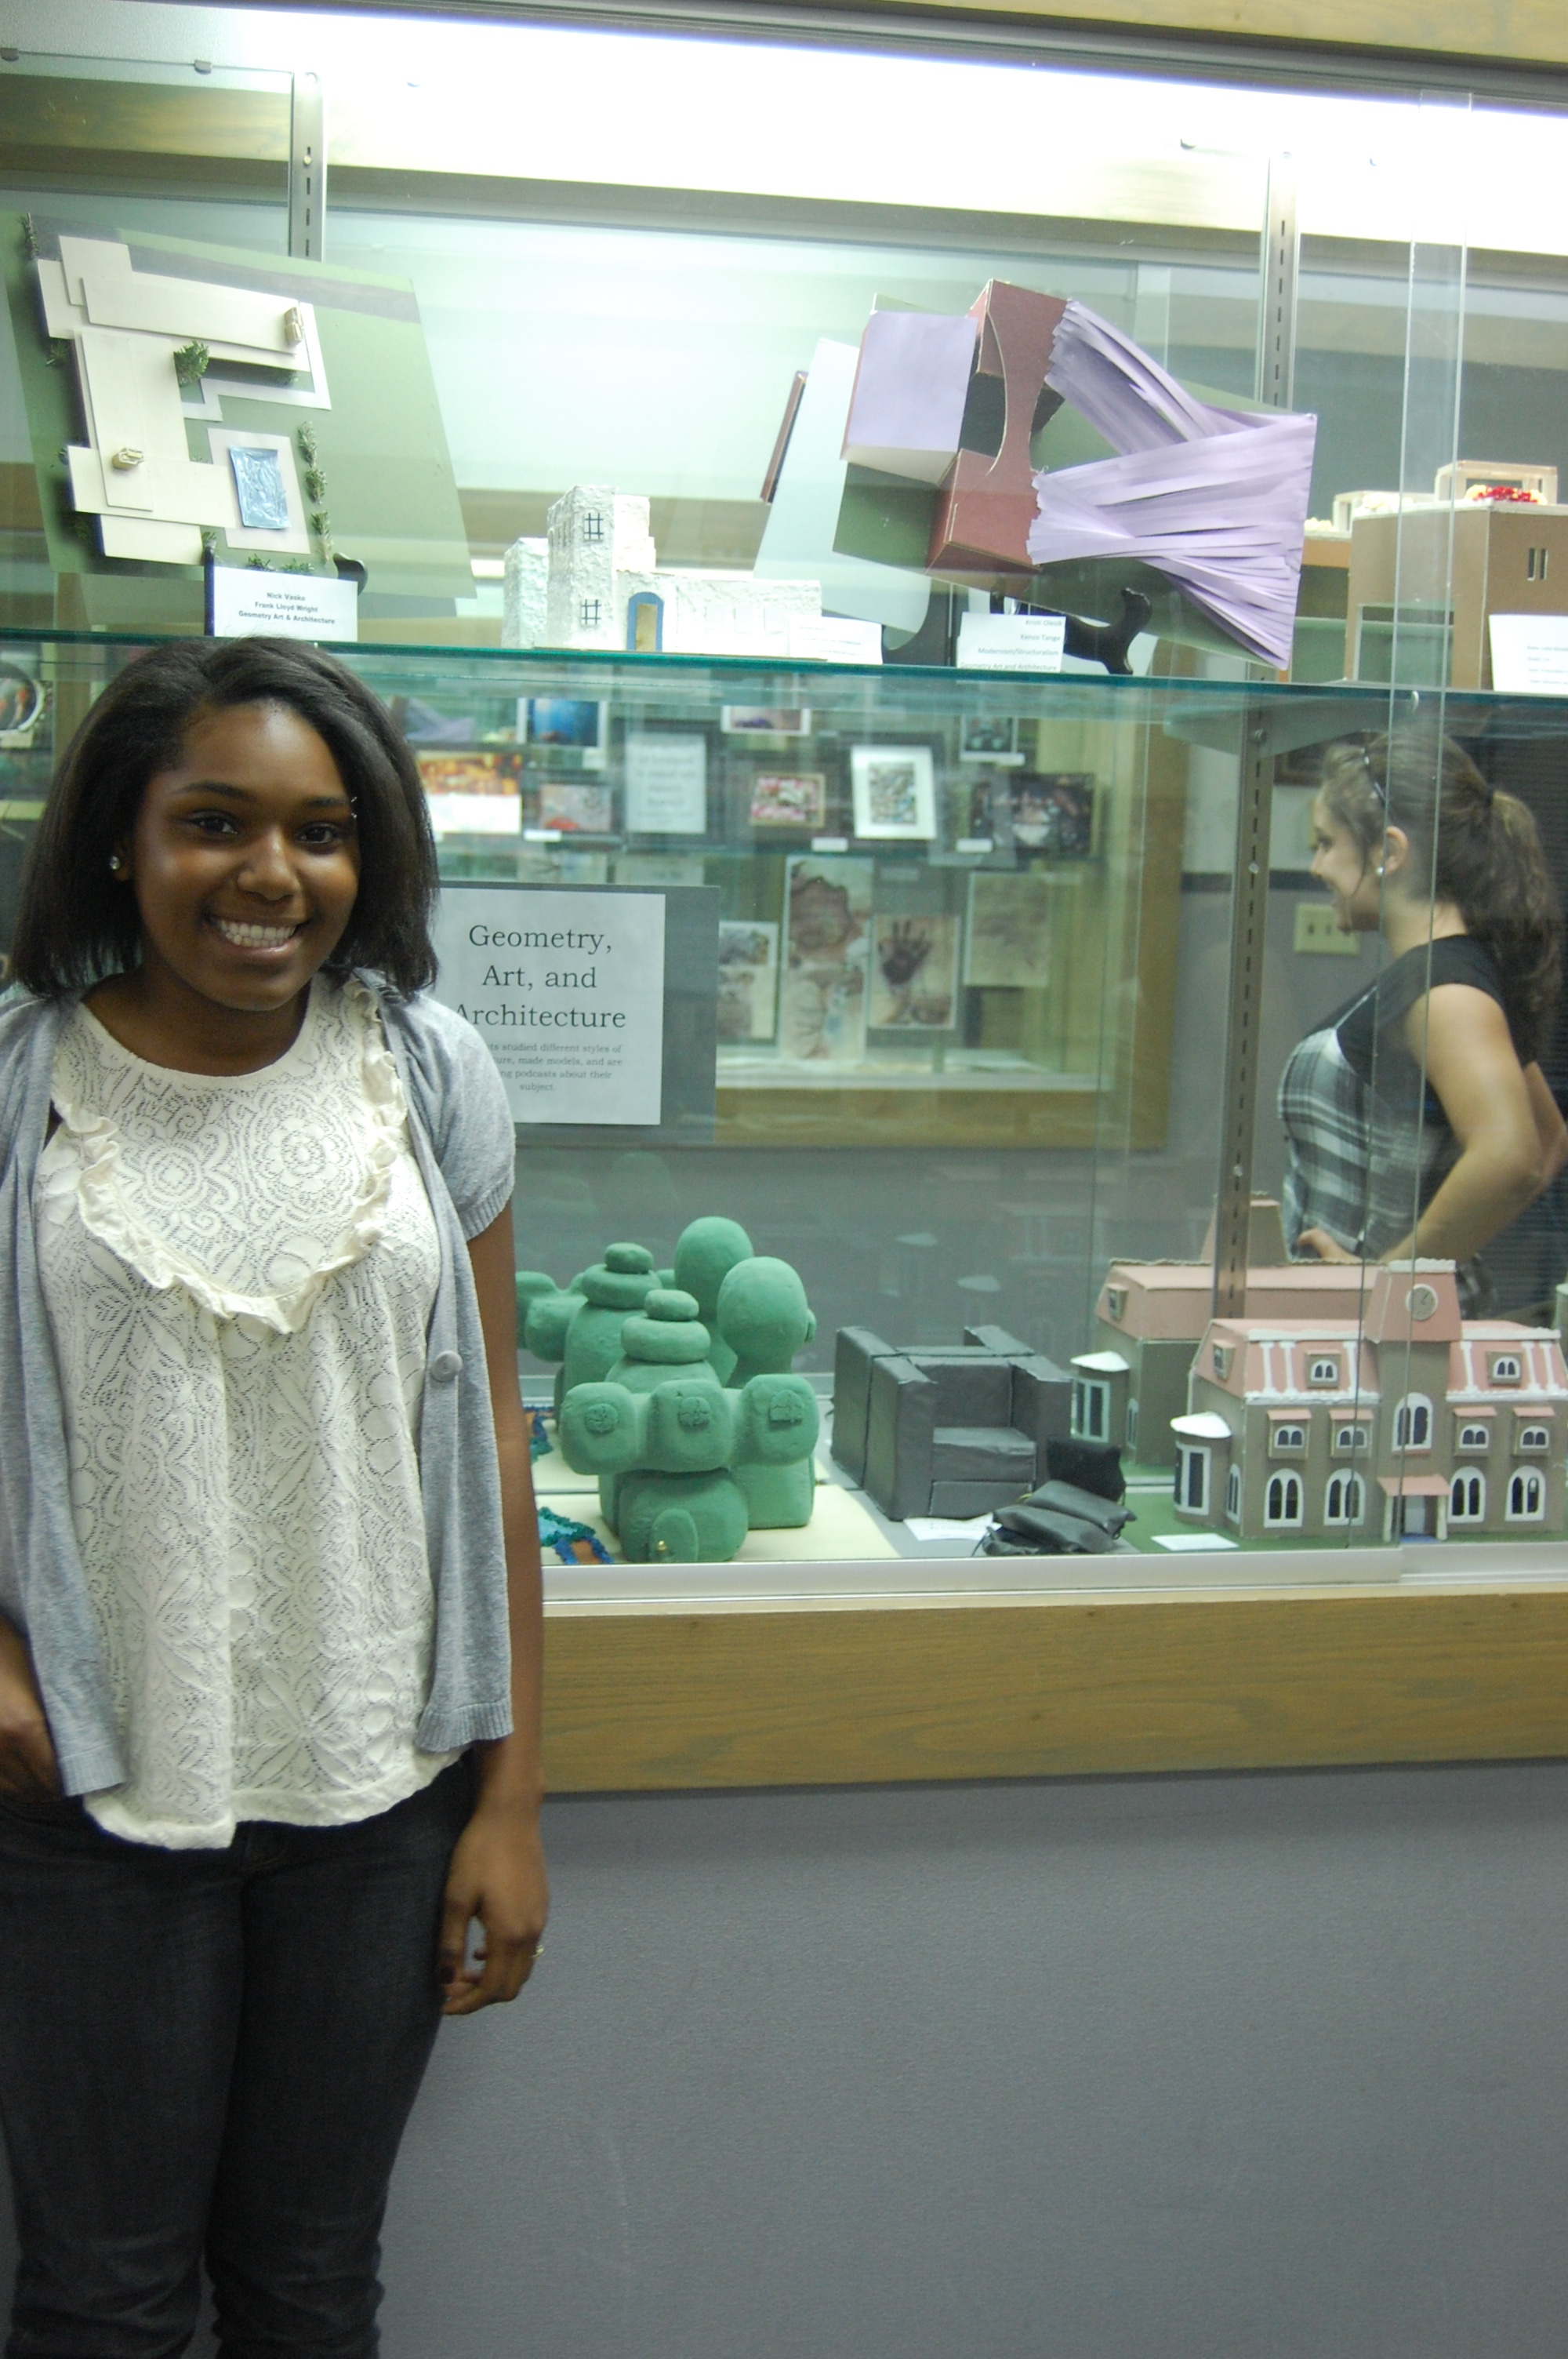 All of our models were shown in a case at our school during the student art show.